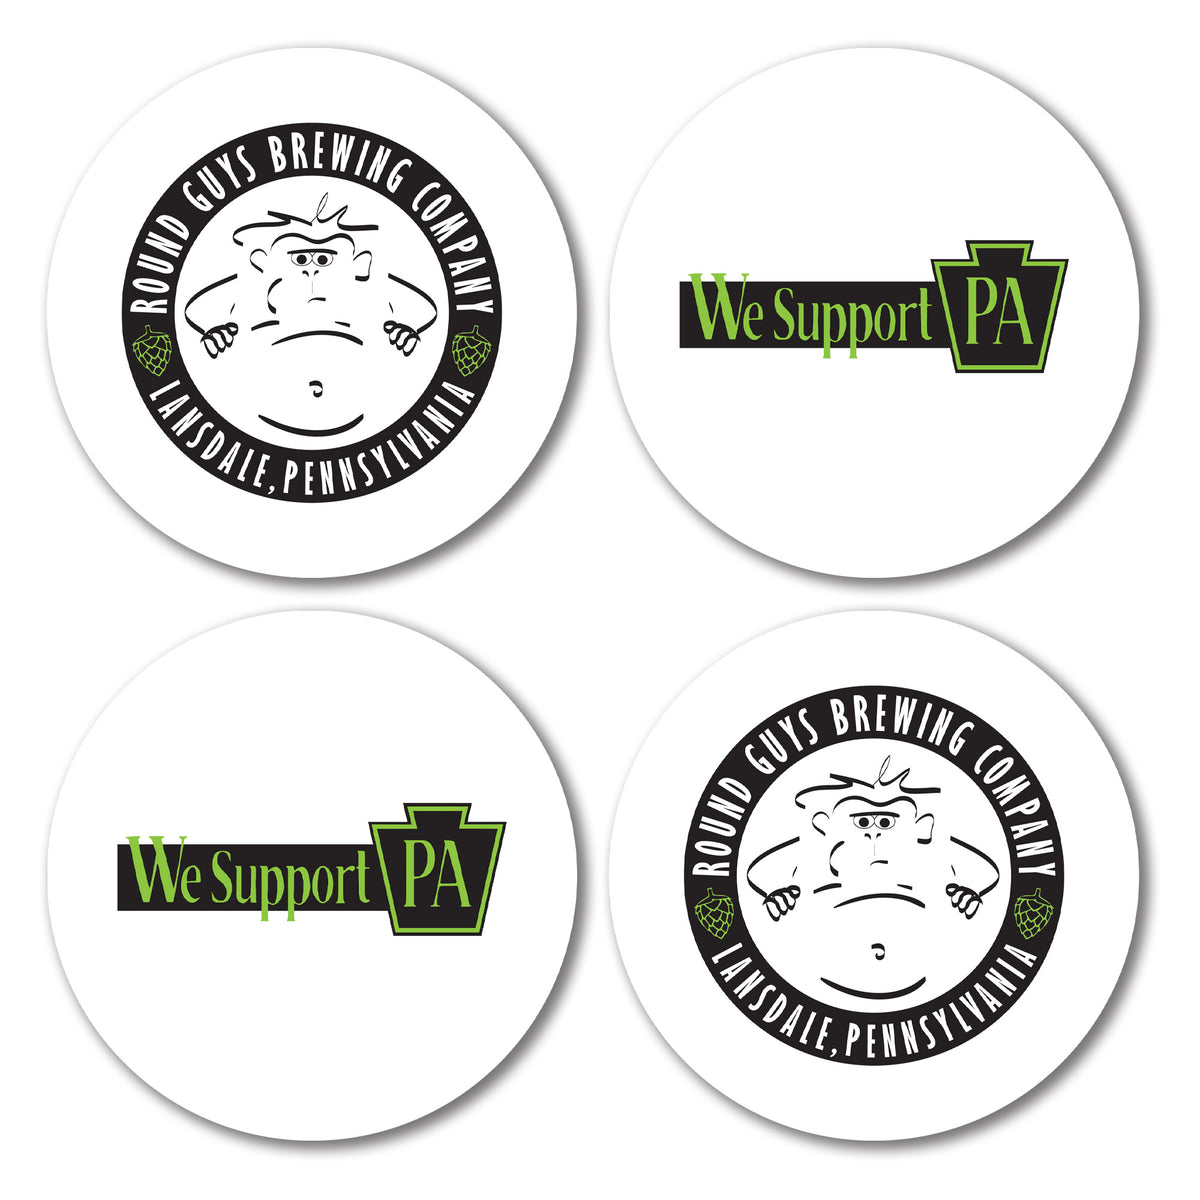 Round Guys Brewing We Support PA Coasters